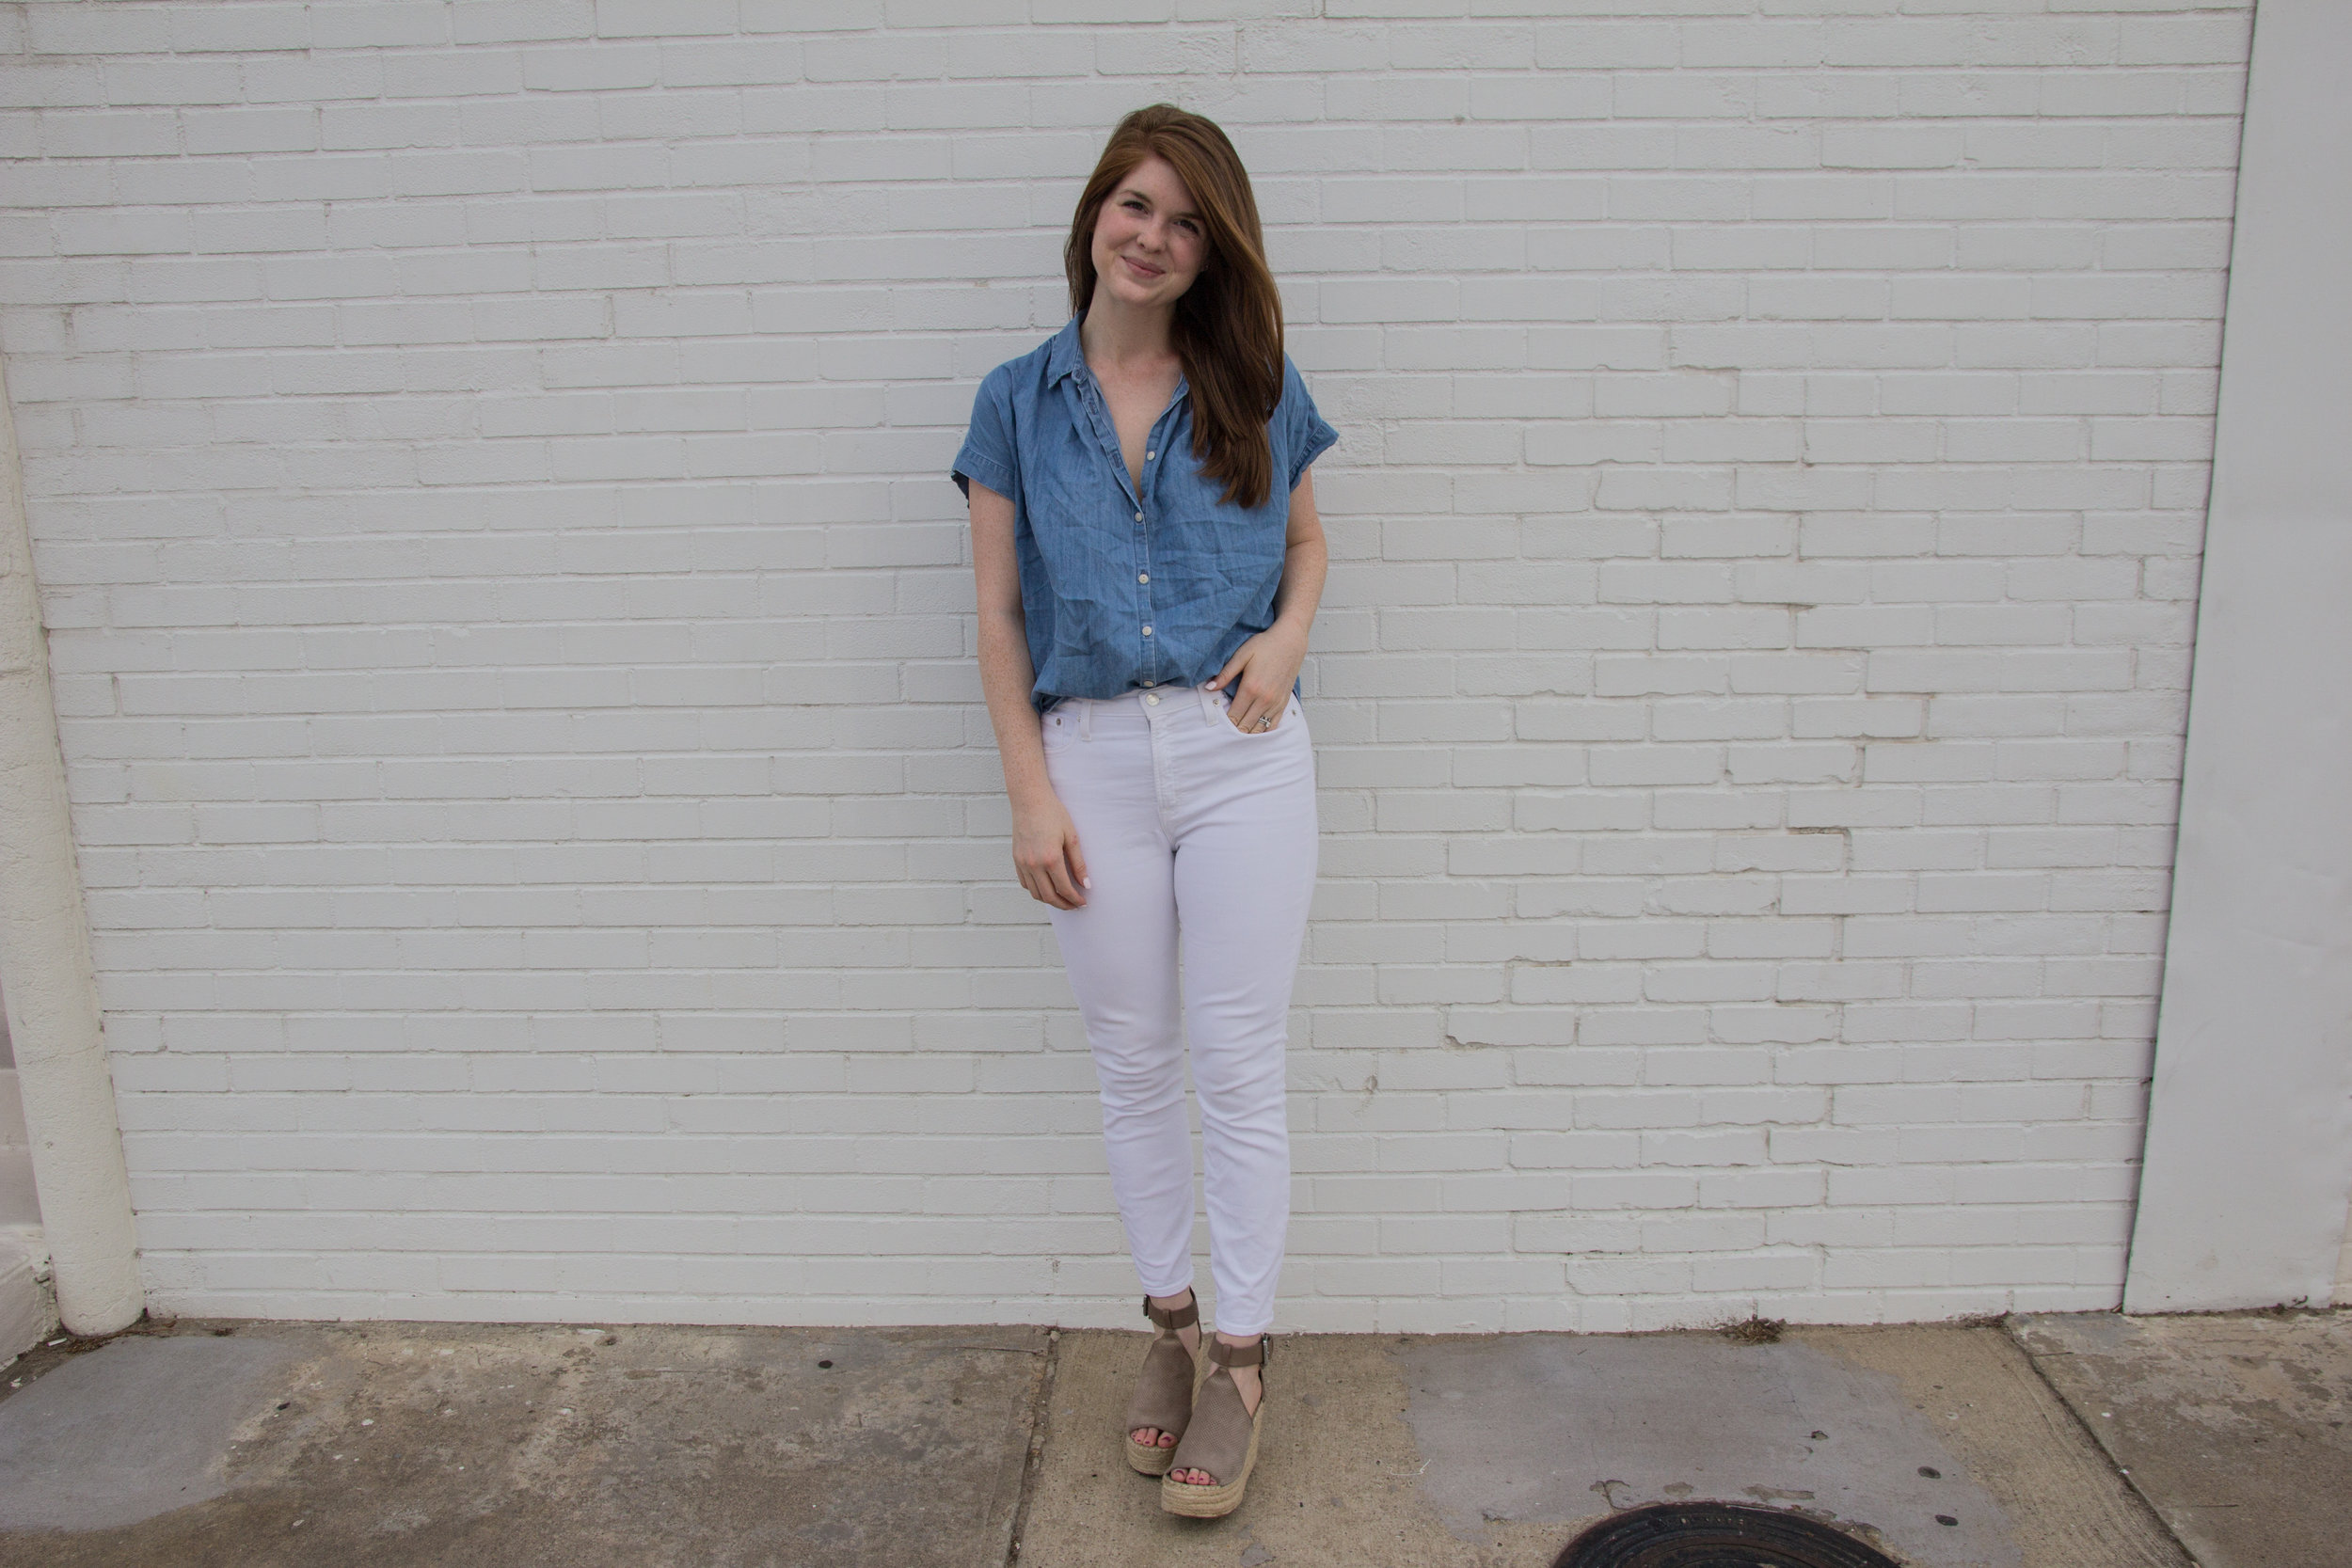 cruelty-free and nontoxic hairspray, clean haircare, green beauty, carina organics fast drying hairspray, josh rosenbrook firm hold hairspray, madewell central shirt, j crew lookout high rise jeans, marc fisher annie wedges